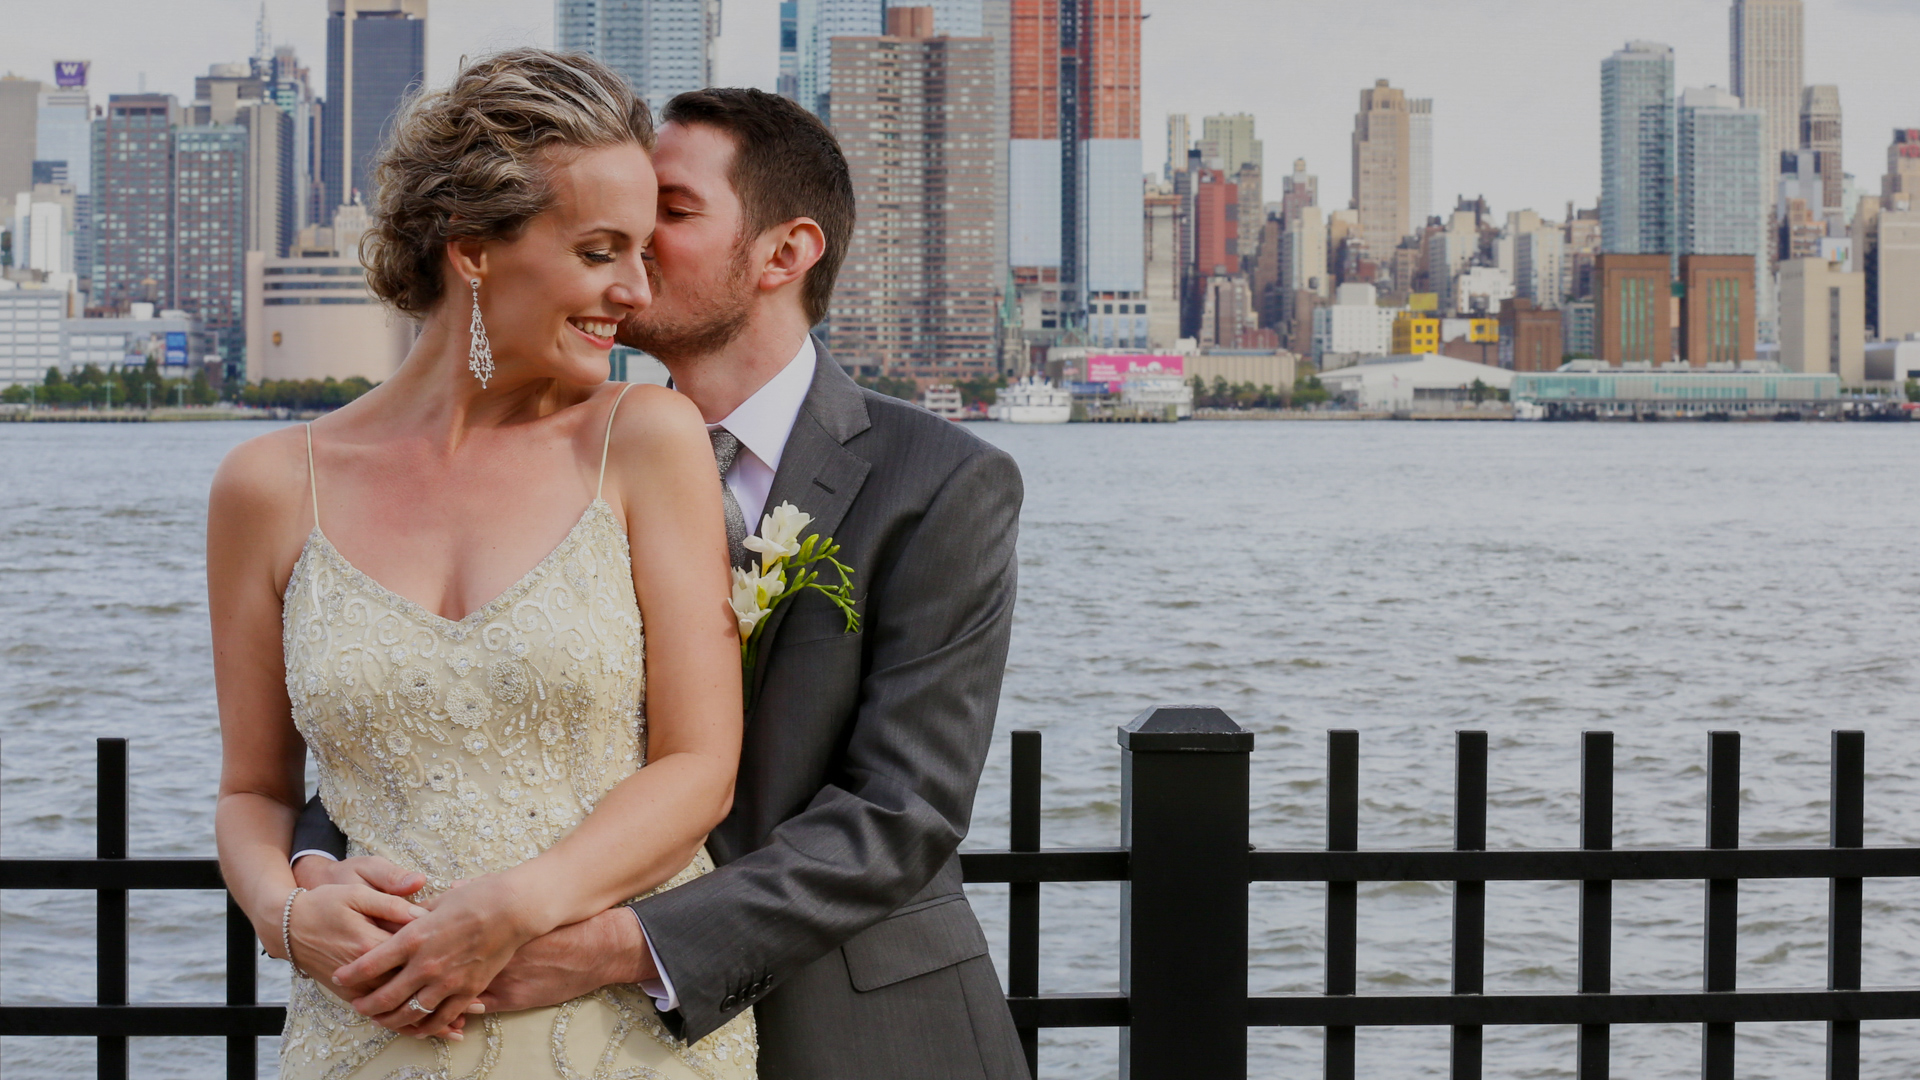 Check portfolios, pricing and availability for wedding photographers in New York